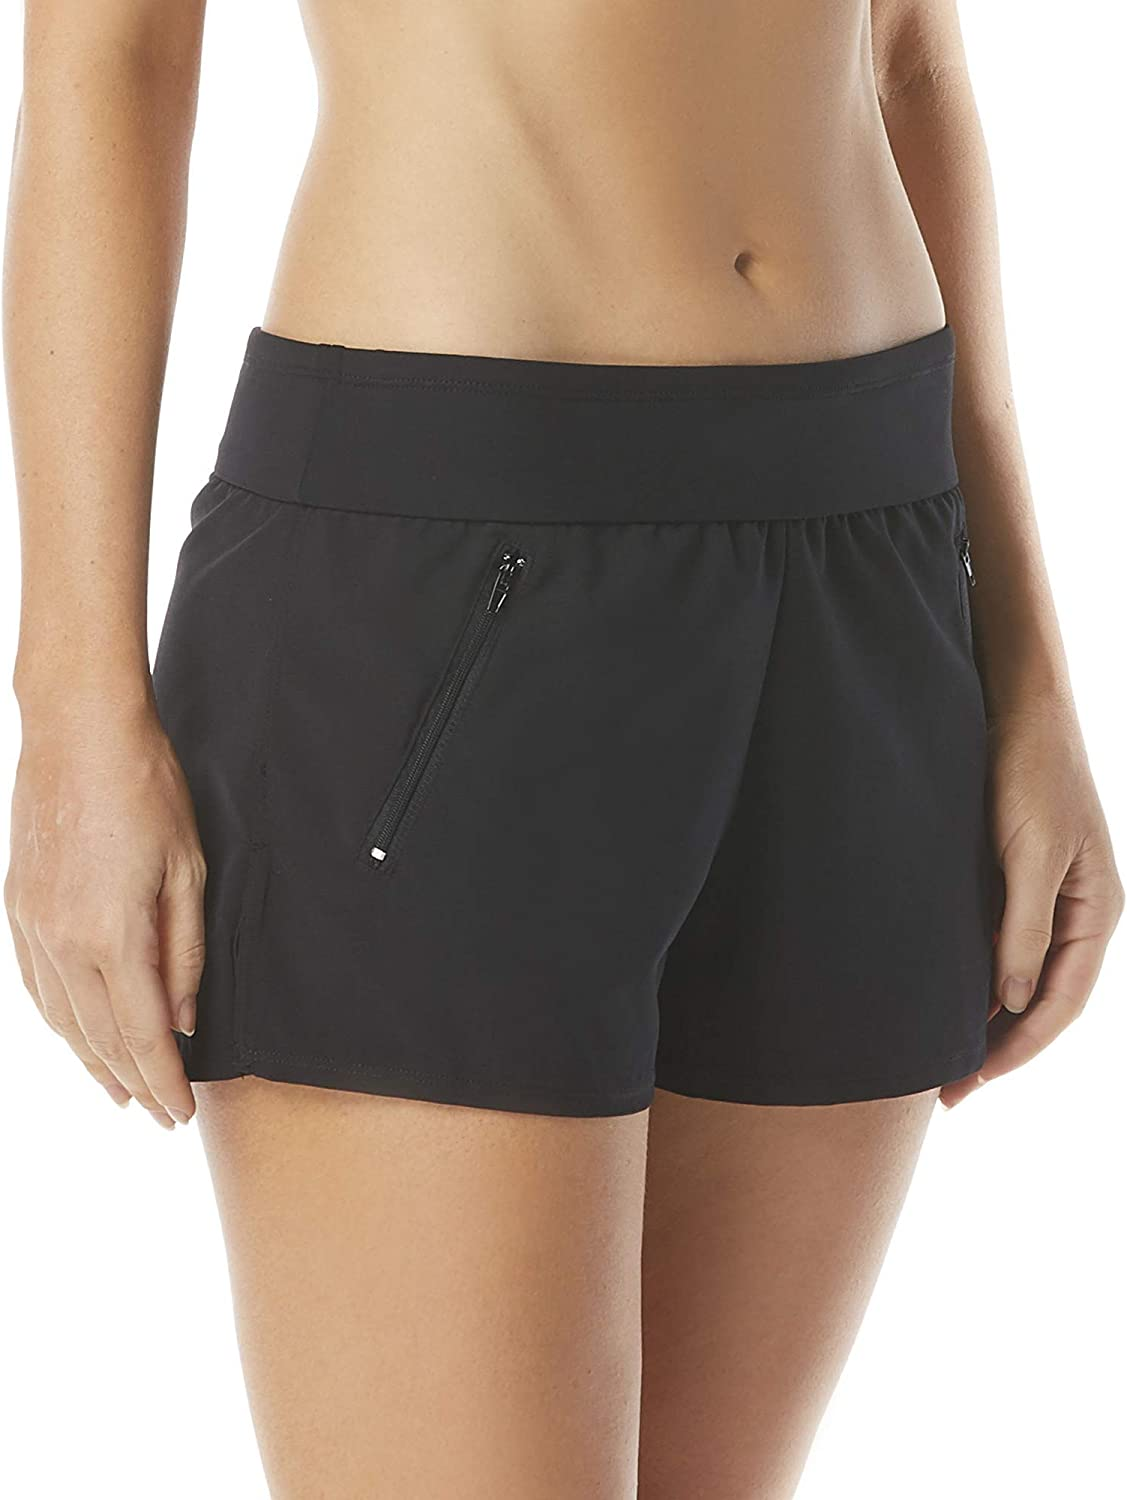 Stretch Woven High quality Beach Shorts — Drying New products world's highest quality popular Quick Swim Athletic Bottoms